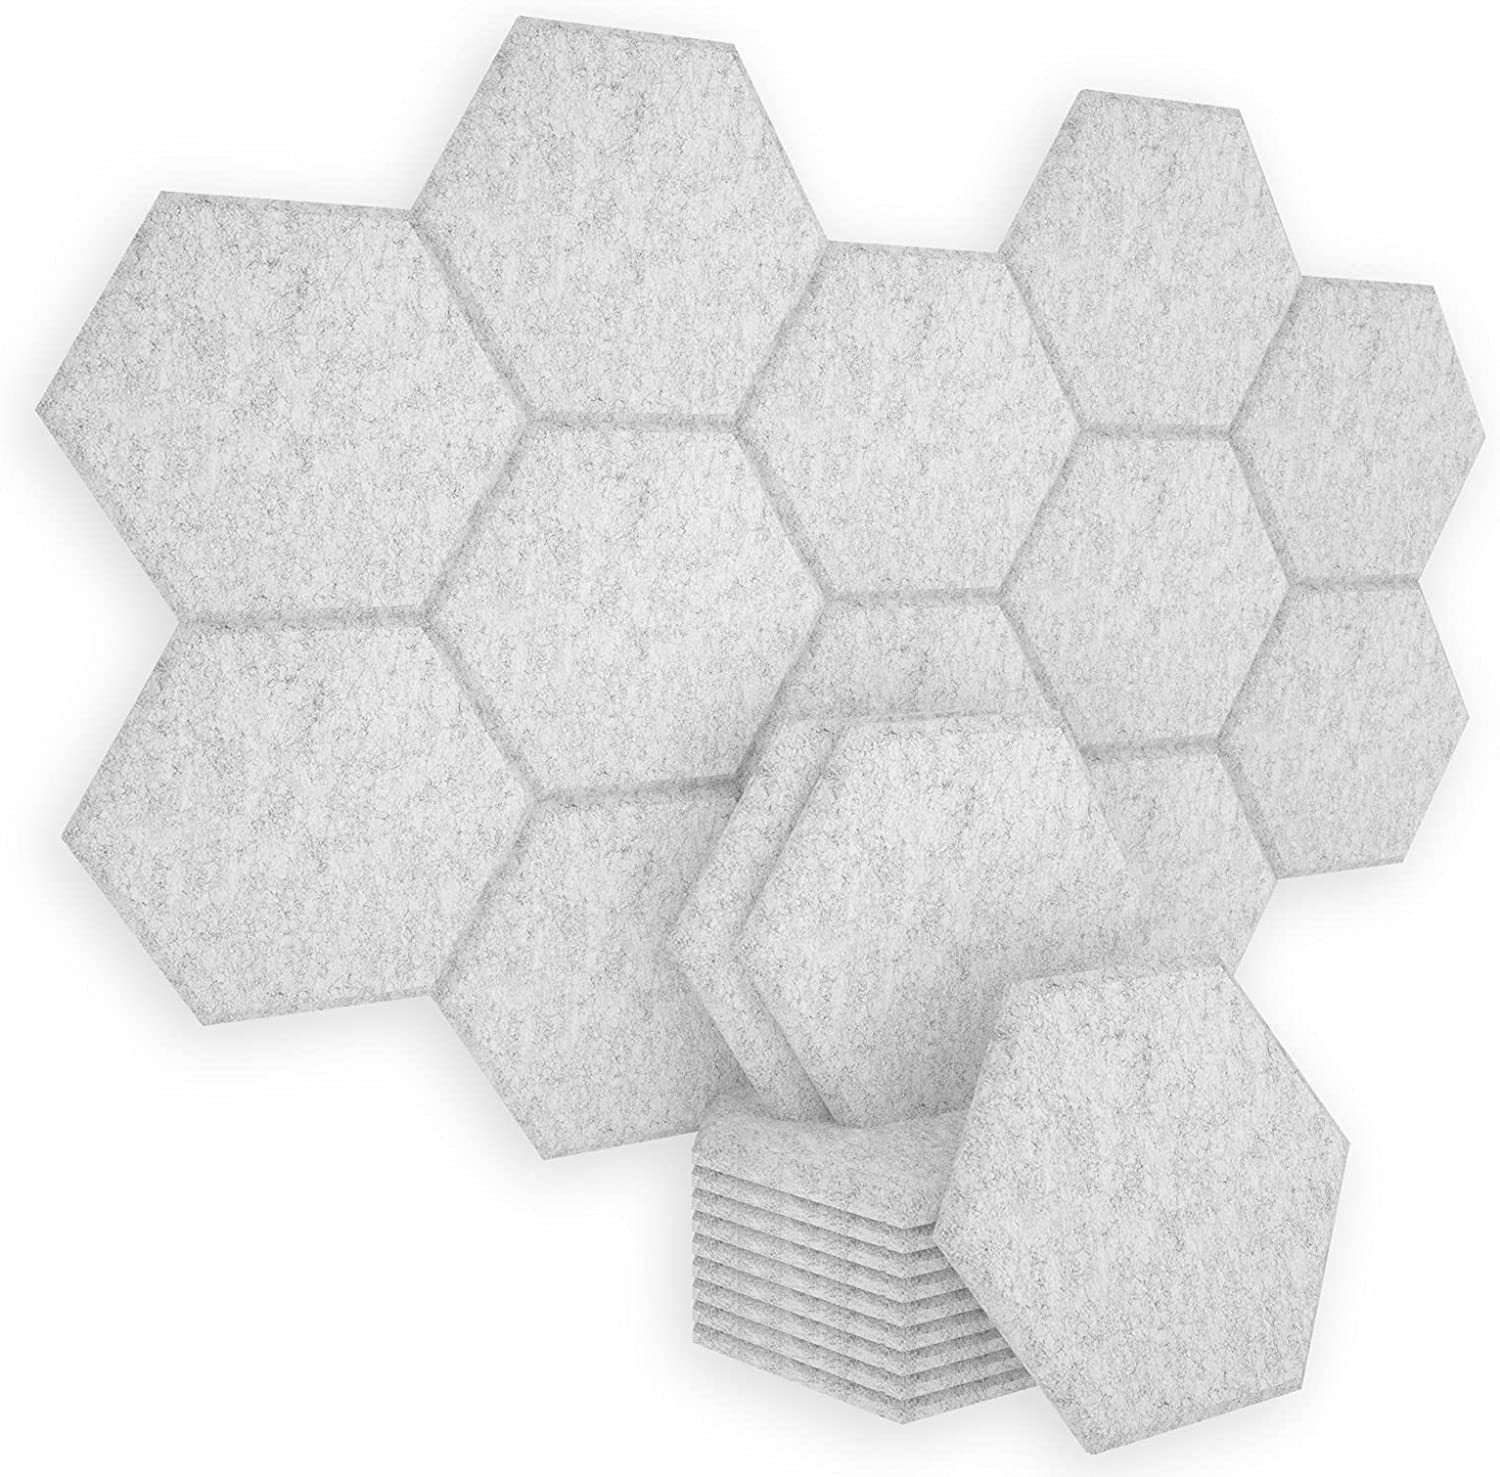 favorite BUBOS 6 Pack Hexagon Tampa Mall Acoustic X 14 Wall Soundproof Panels